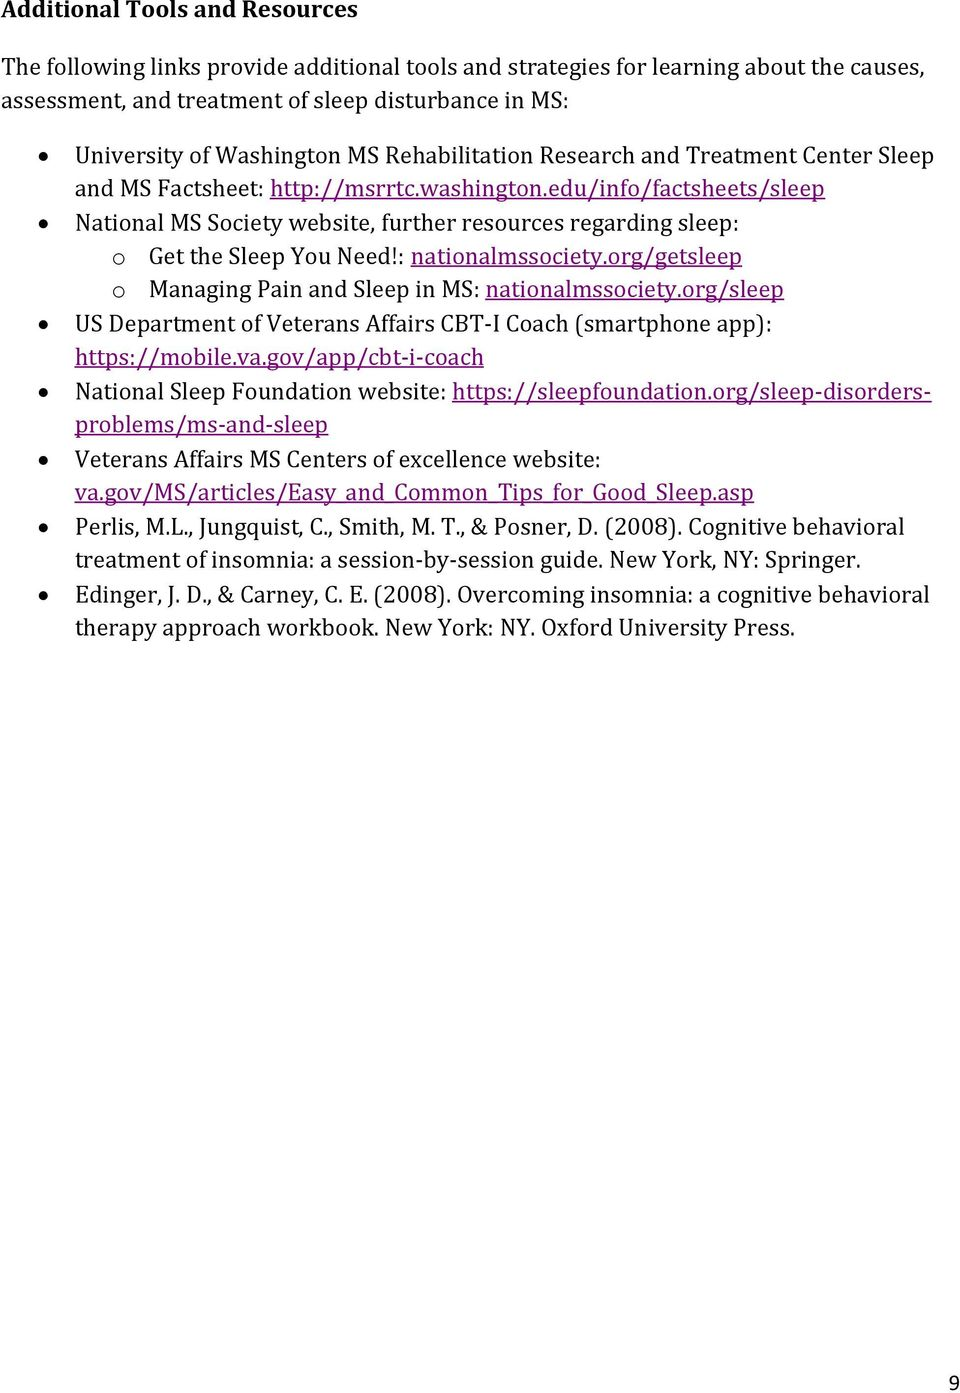 edu/info/factsheets/sleep National MS Society website, further resources regarding sleep: o Get the Sleep You Need!: nationalmssociety.org/getsleep o Managing Pain and Sleep in MS: nationalmssociety.